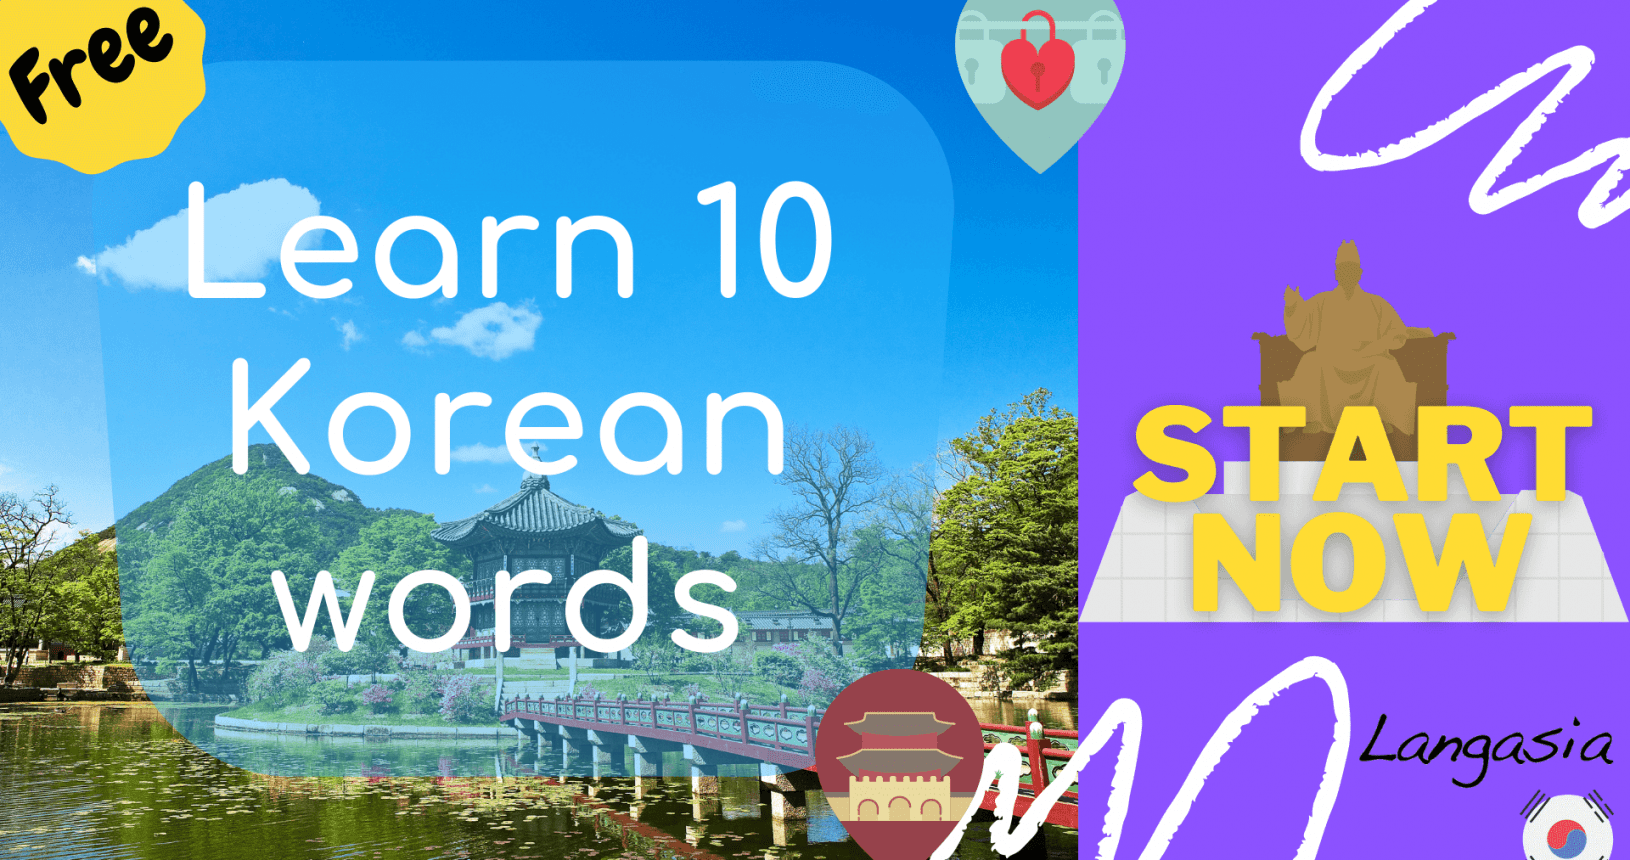 learn 10 korean words